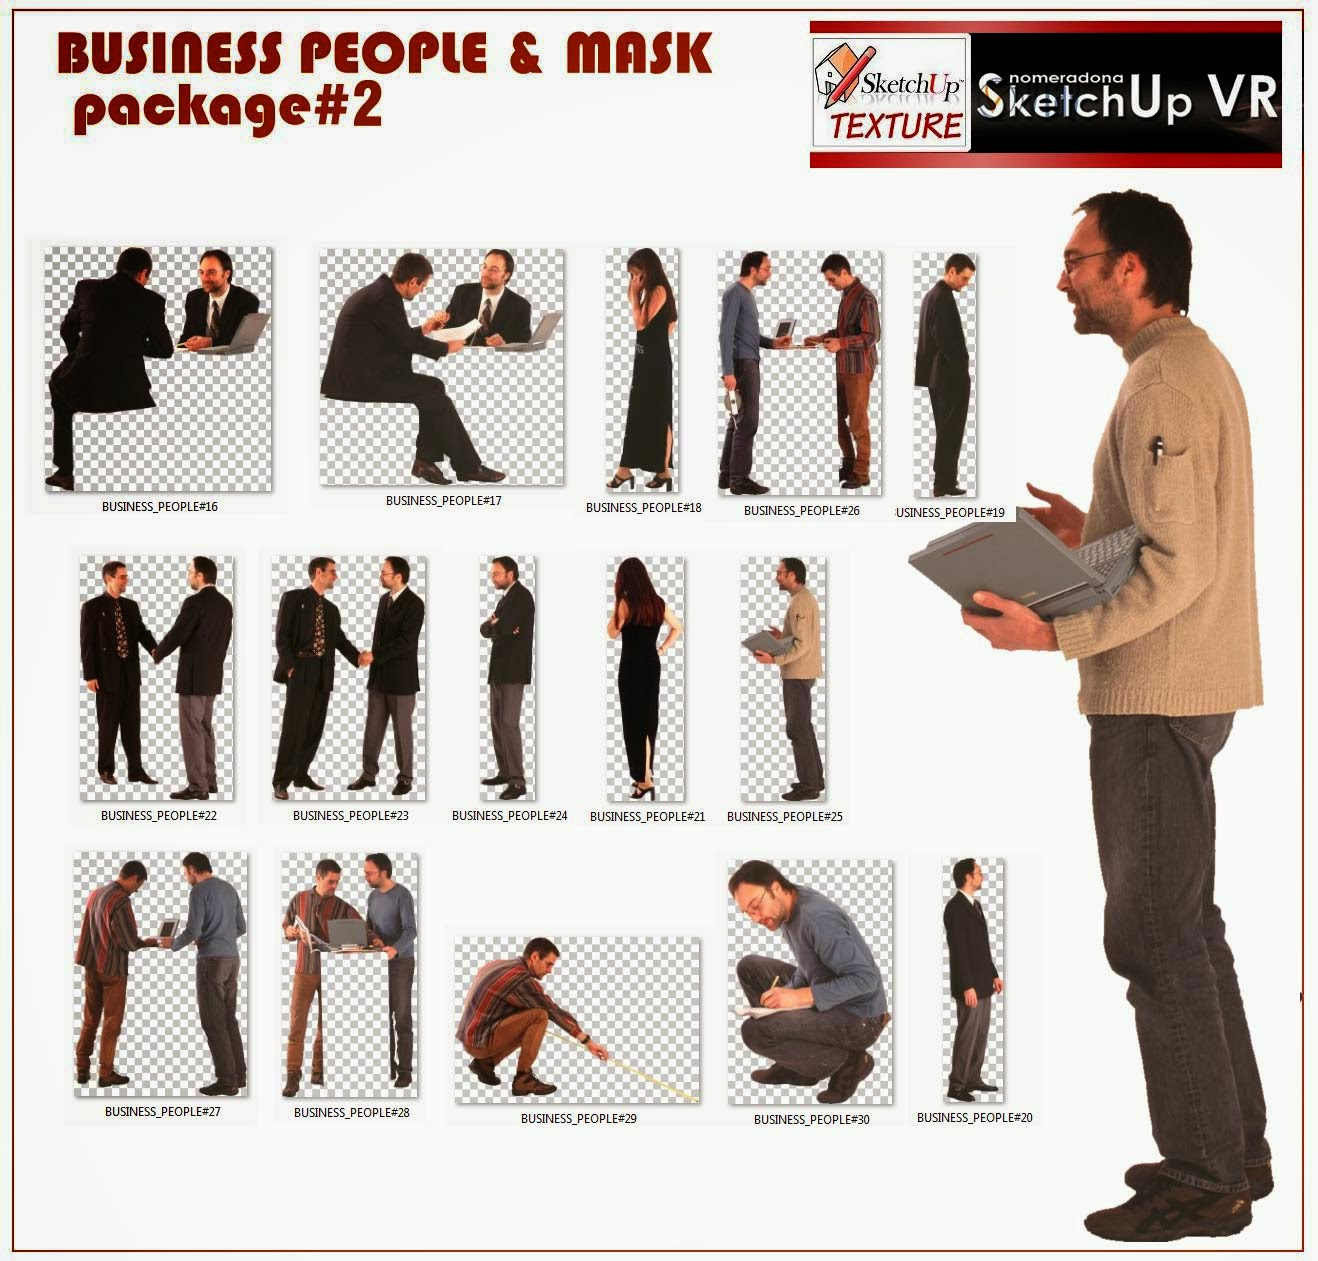 sketchup texture cut out business people package 2